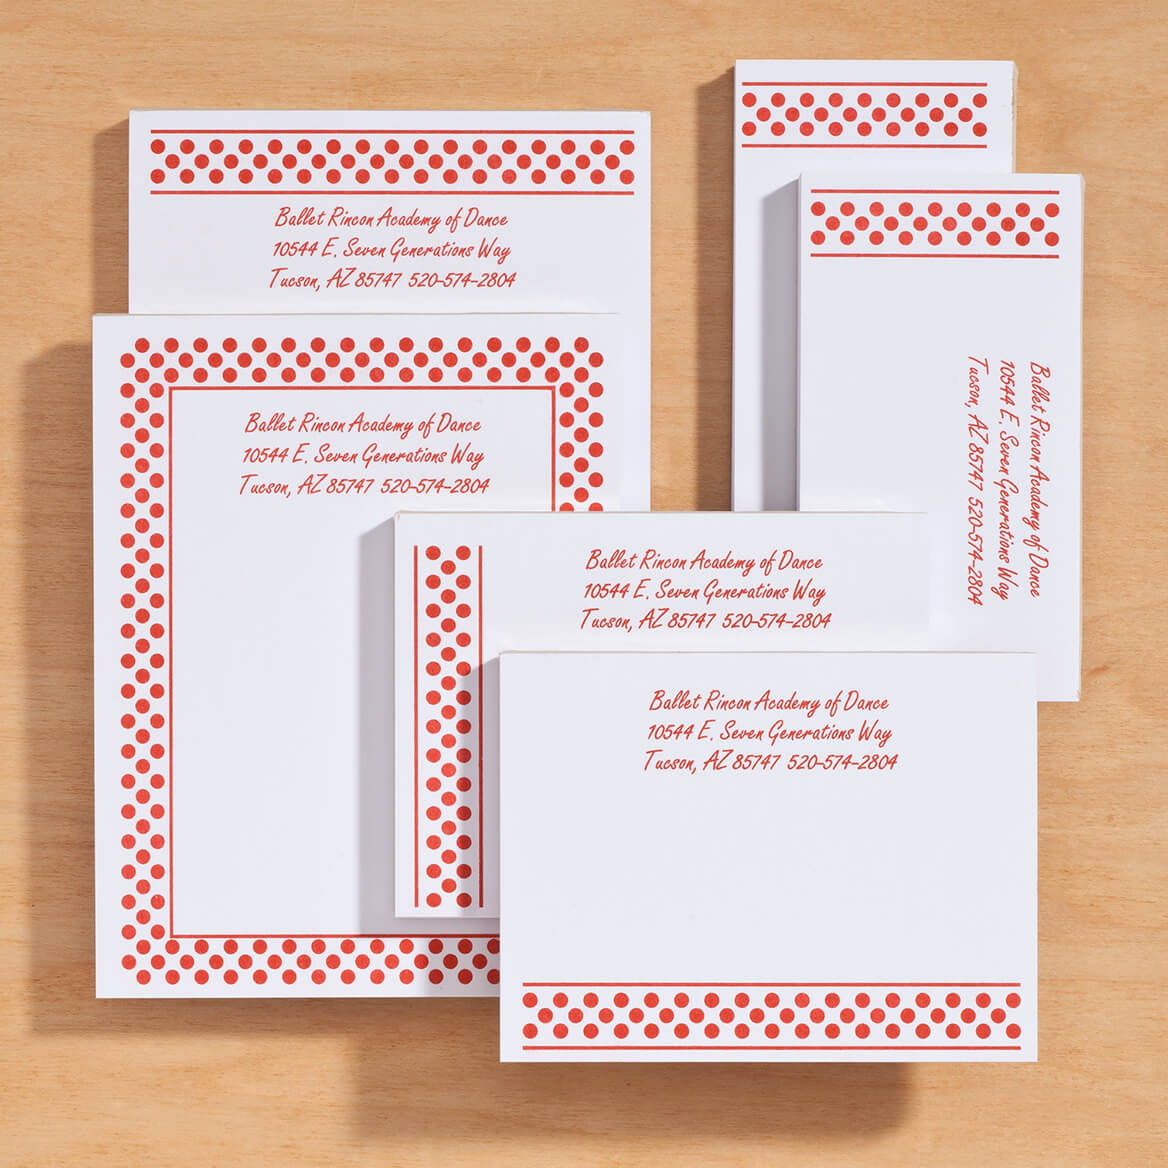 Personalized Polka Dots Business Notepads Refill Set of 6-350385